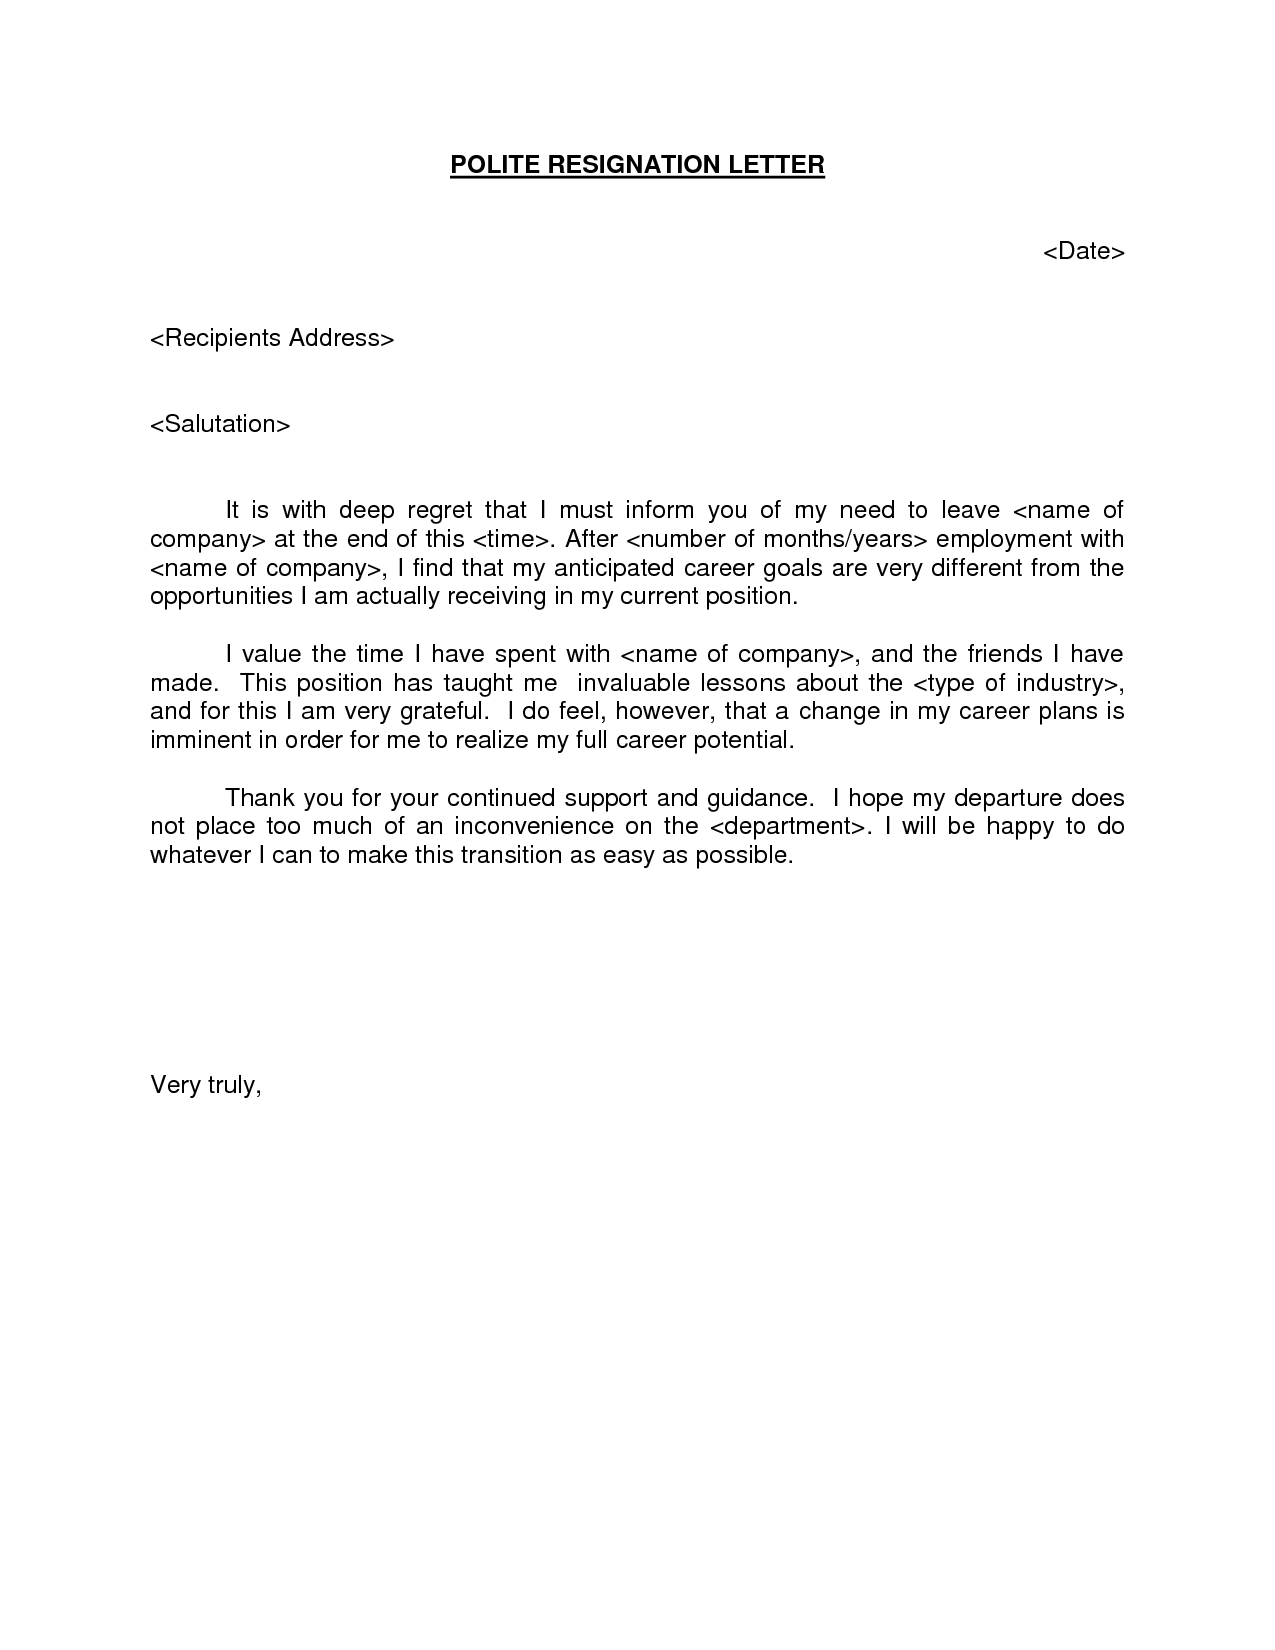 dental recall letter template Collection-POLITE RESIGNATION LETTER BestdealformoneyWriting A Letter Resignation Email Letter Sample 13-p